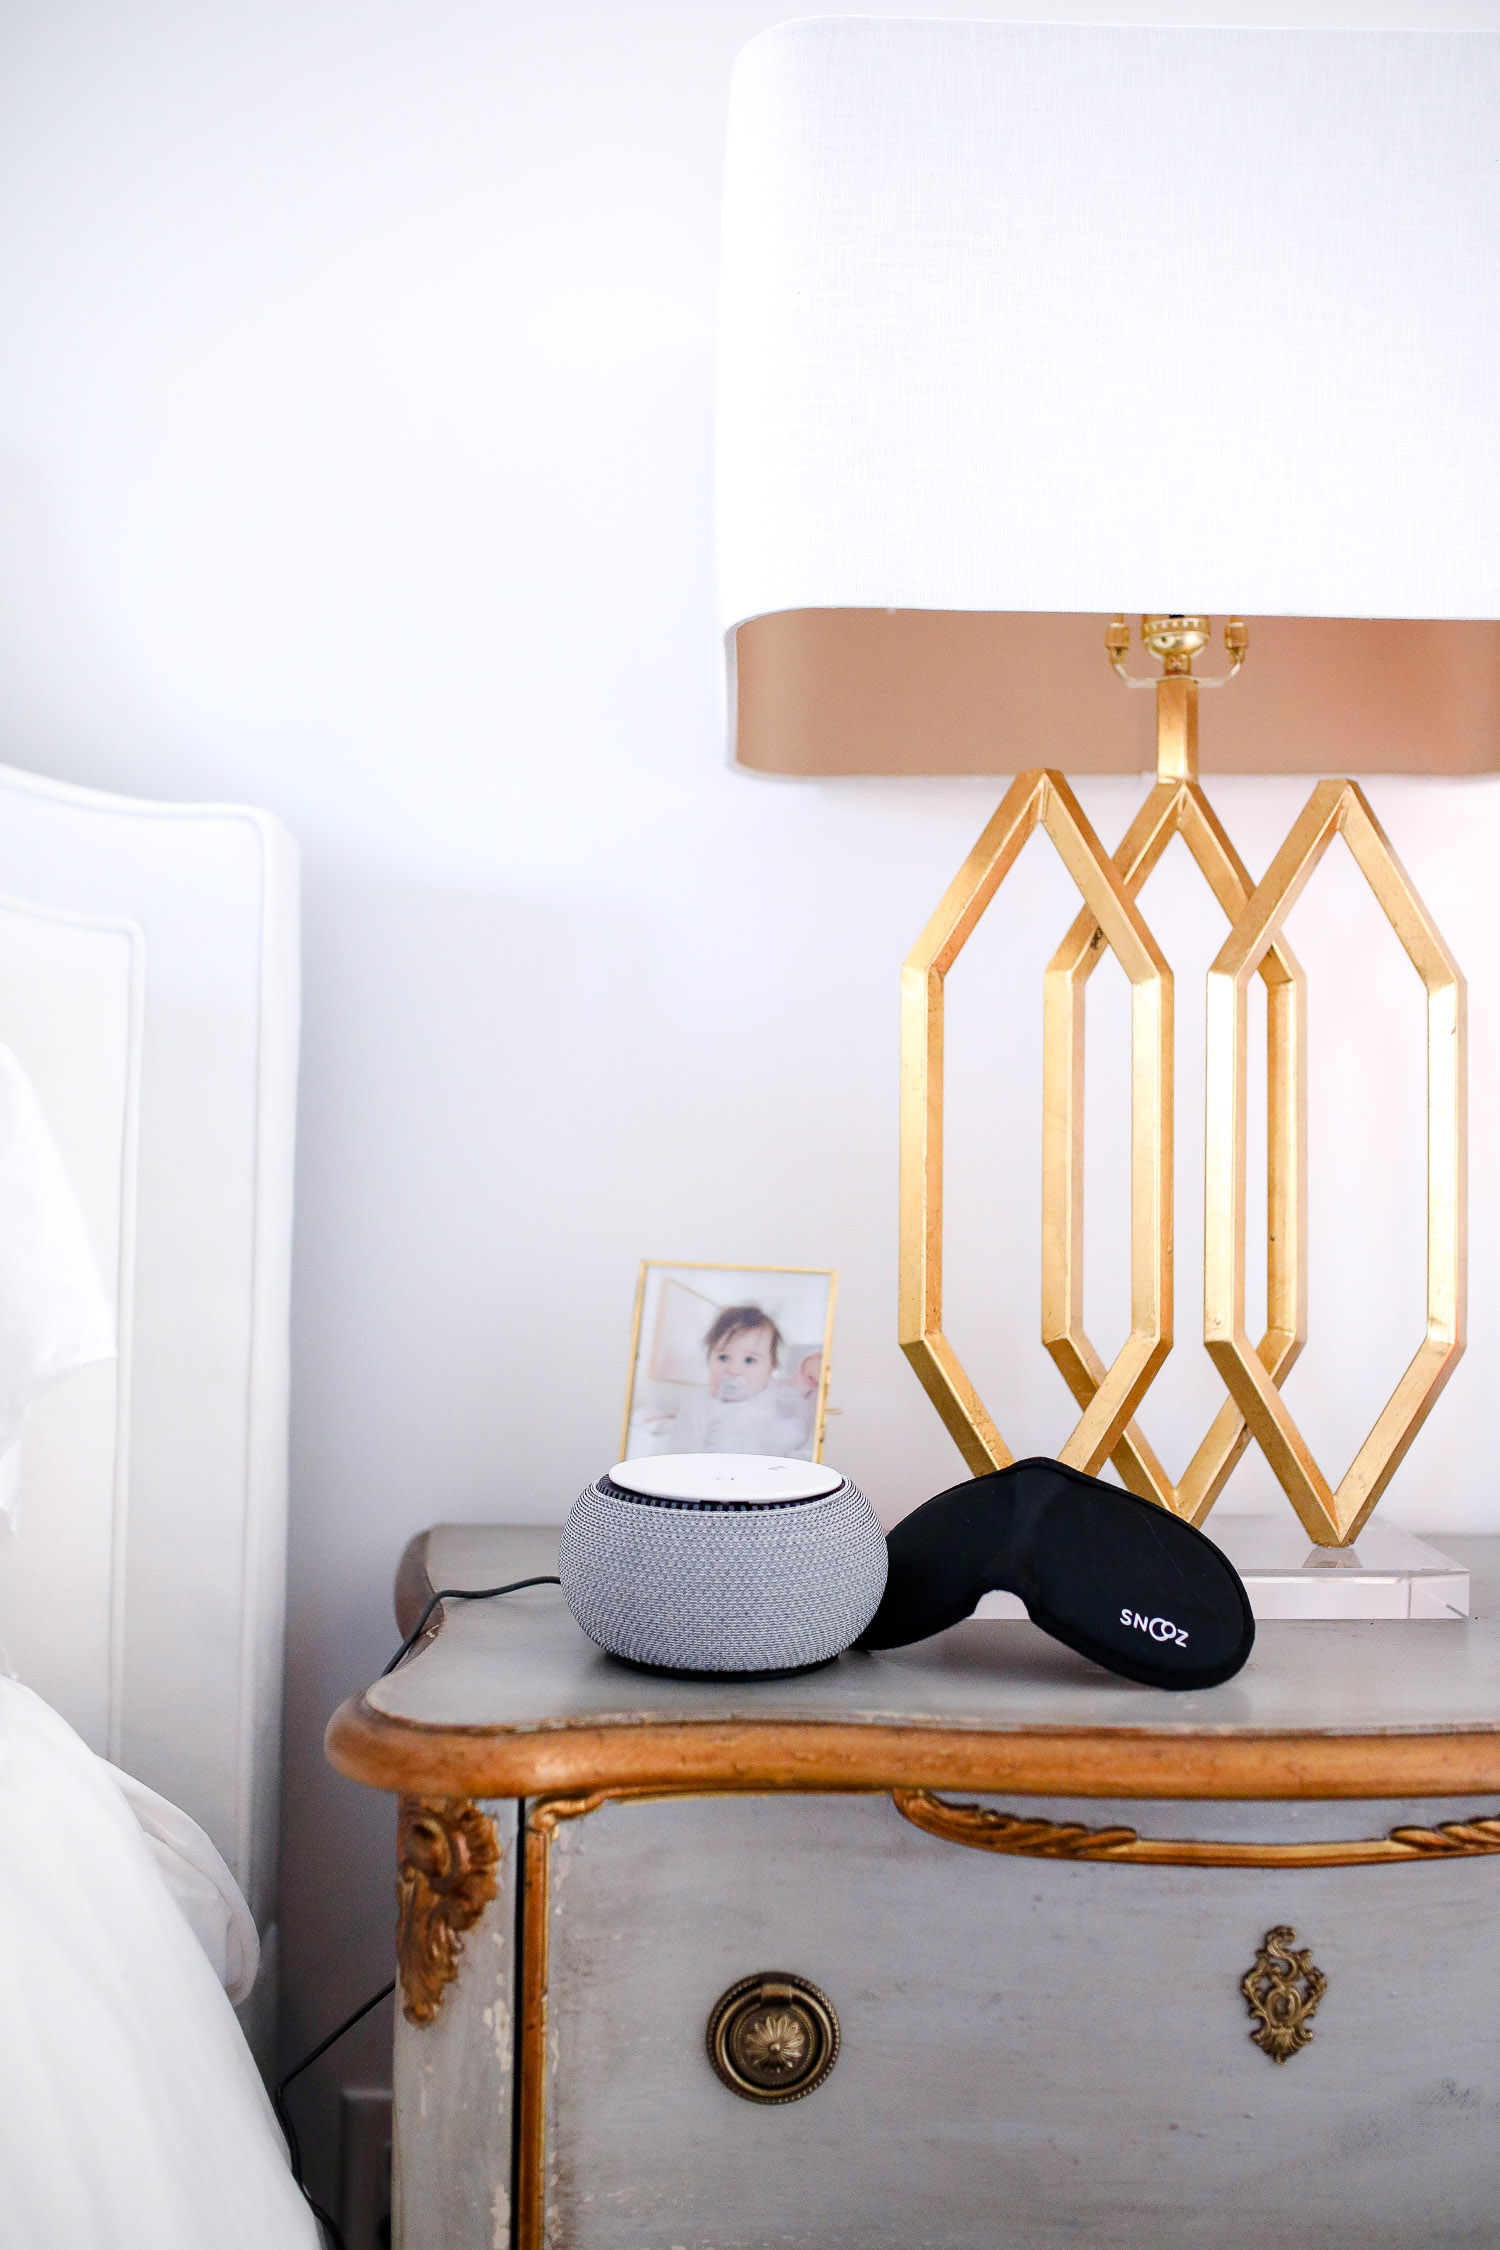 verishop, verishop review, pinterest master bedroom inspo, emily gemma, hooker furniture nightstands-2 | Cozy Essentials by popular US fashion blog, The Sweetest Thing: image of a nightstand with a Snooz SNOOZ White Noise Sound Machine and Snooz sleep mask.